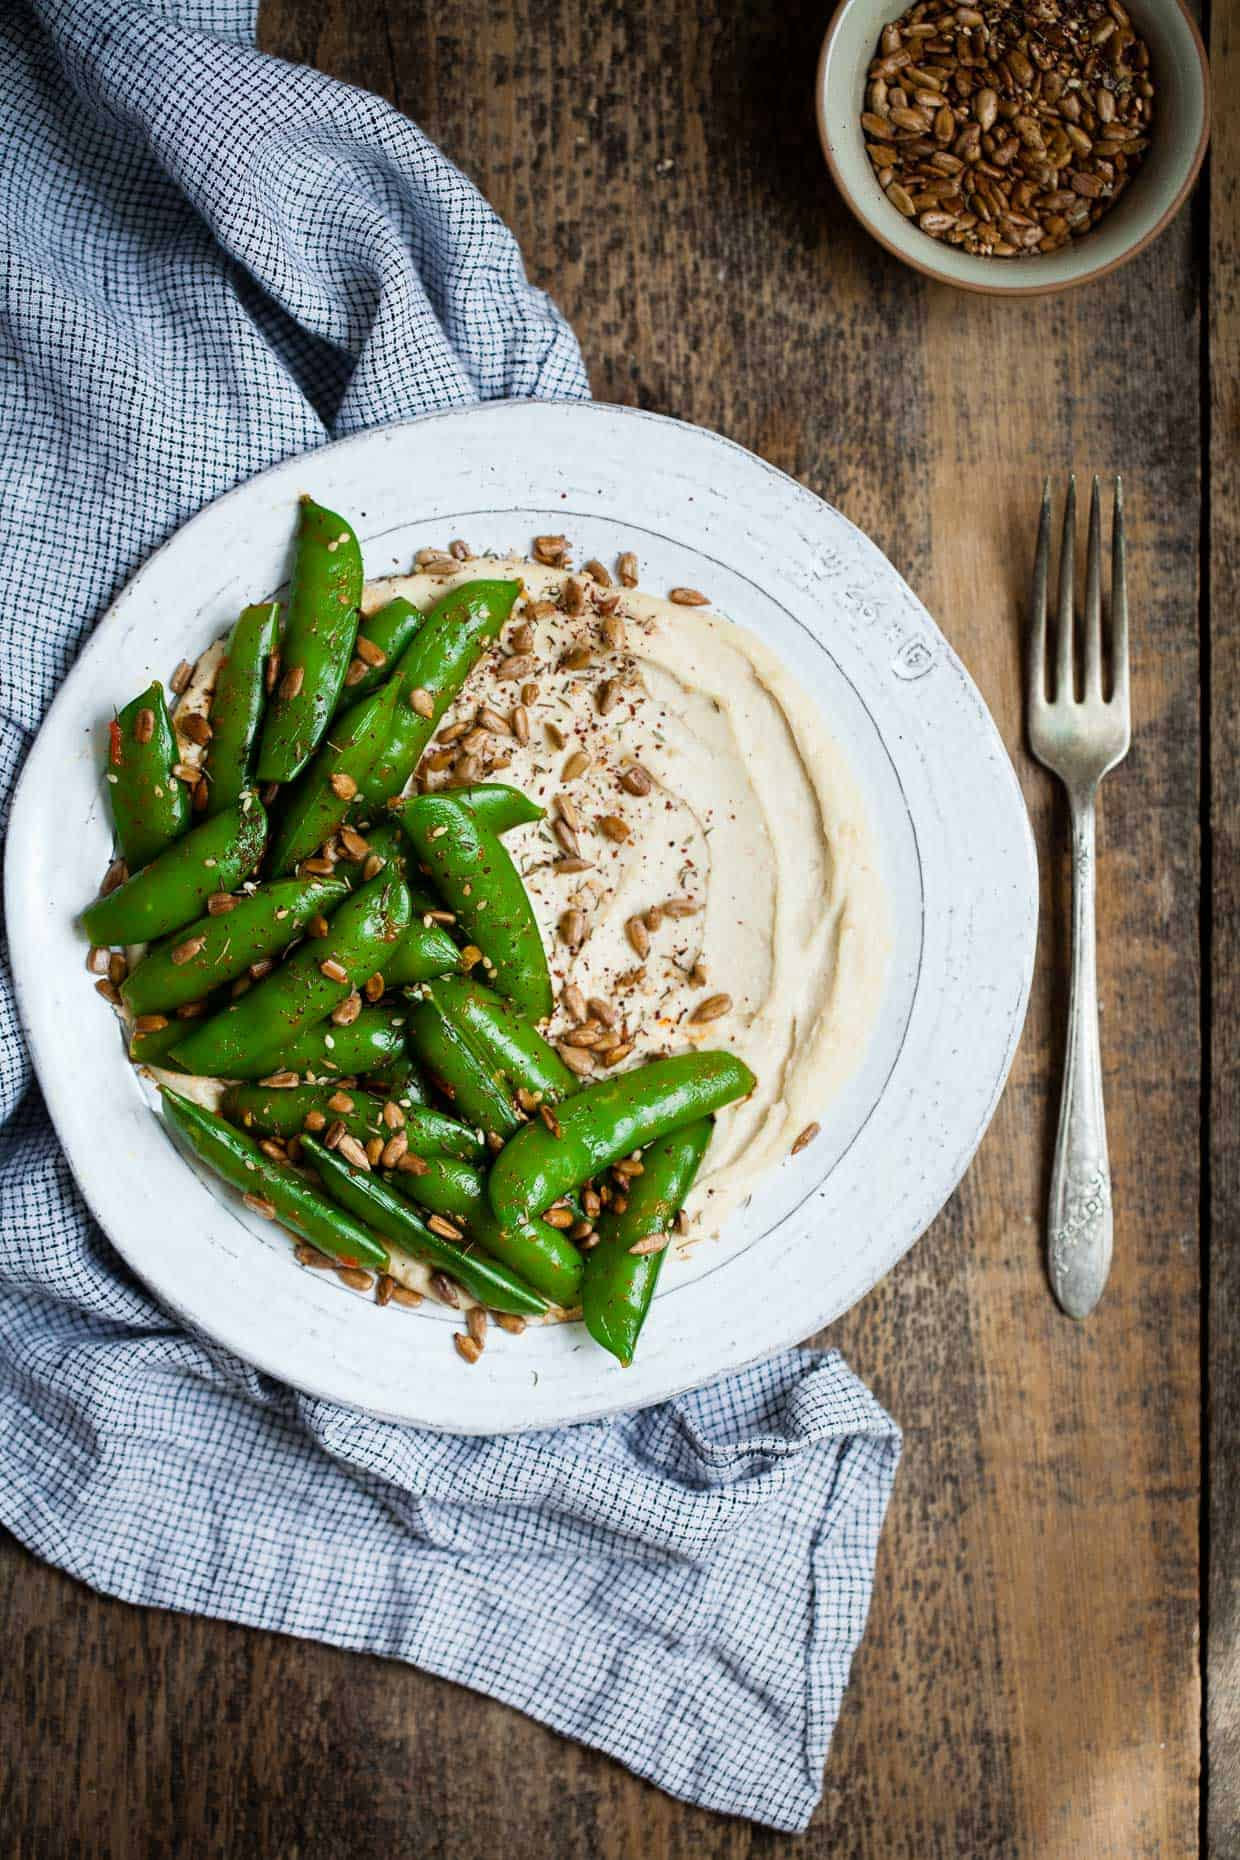 Harissa Snap Peas with Cashew Hummus & Sunflower Seed Za'atar